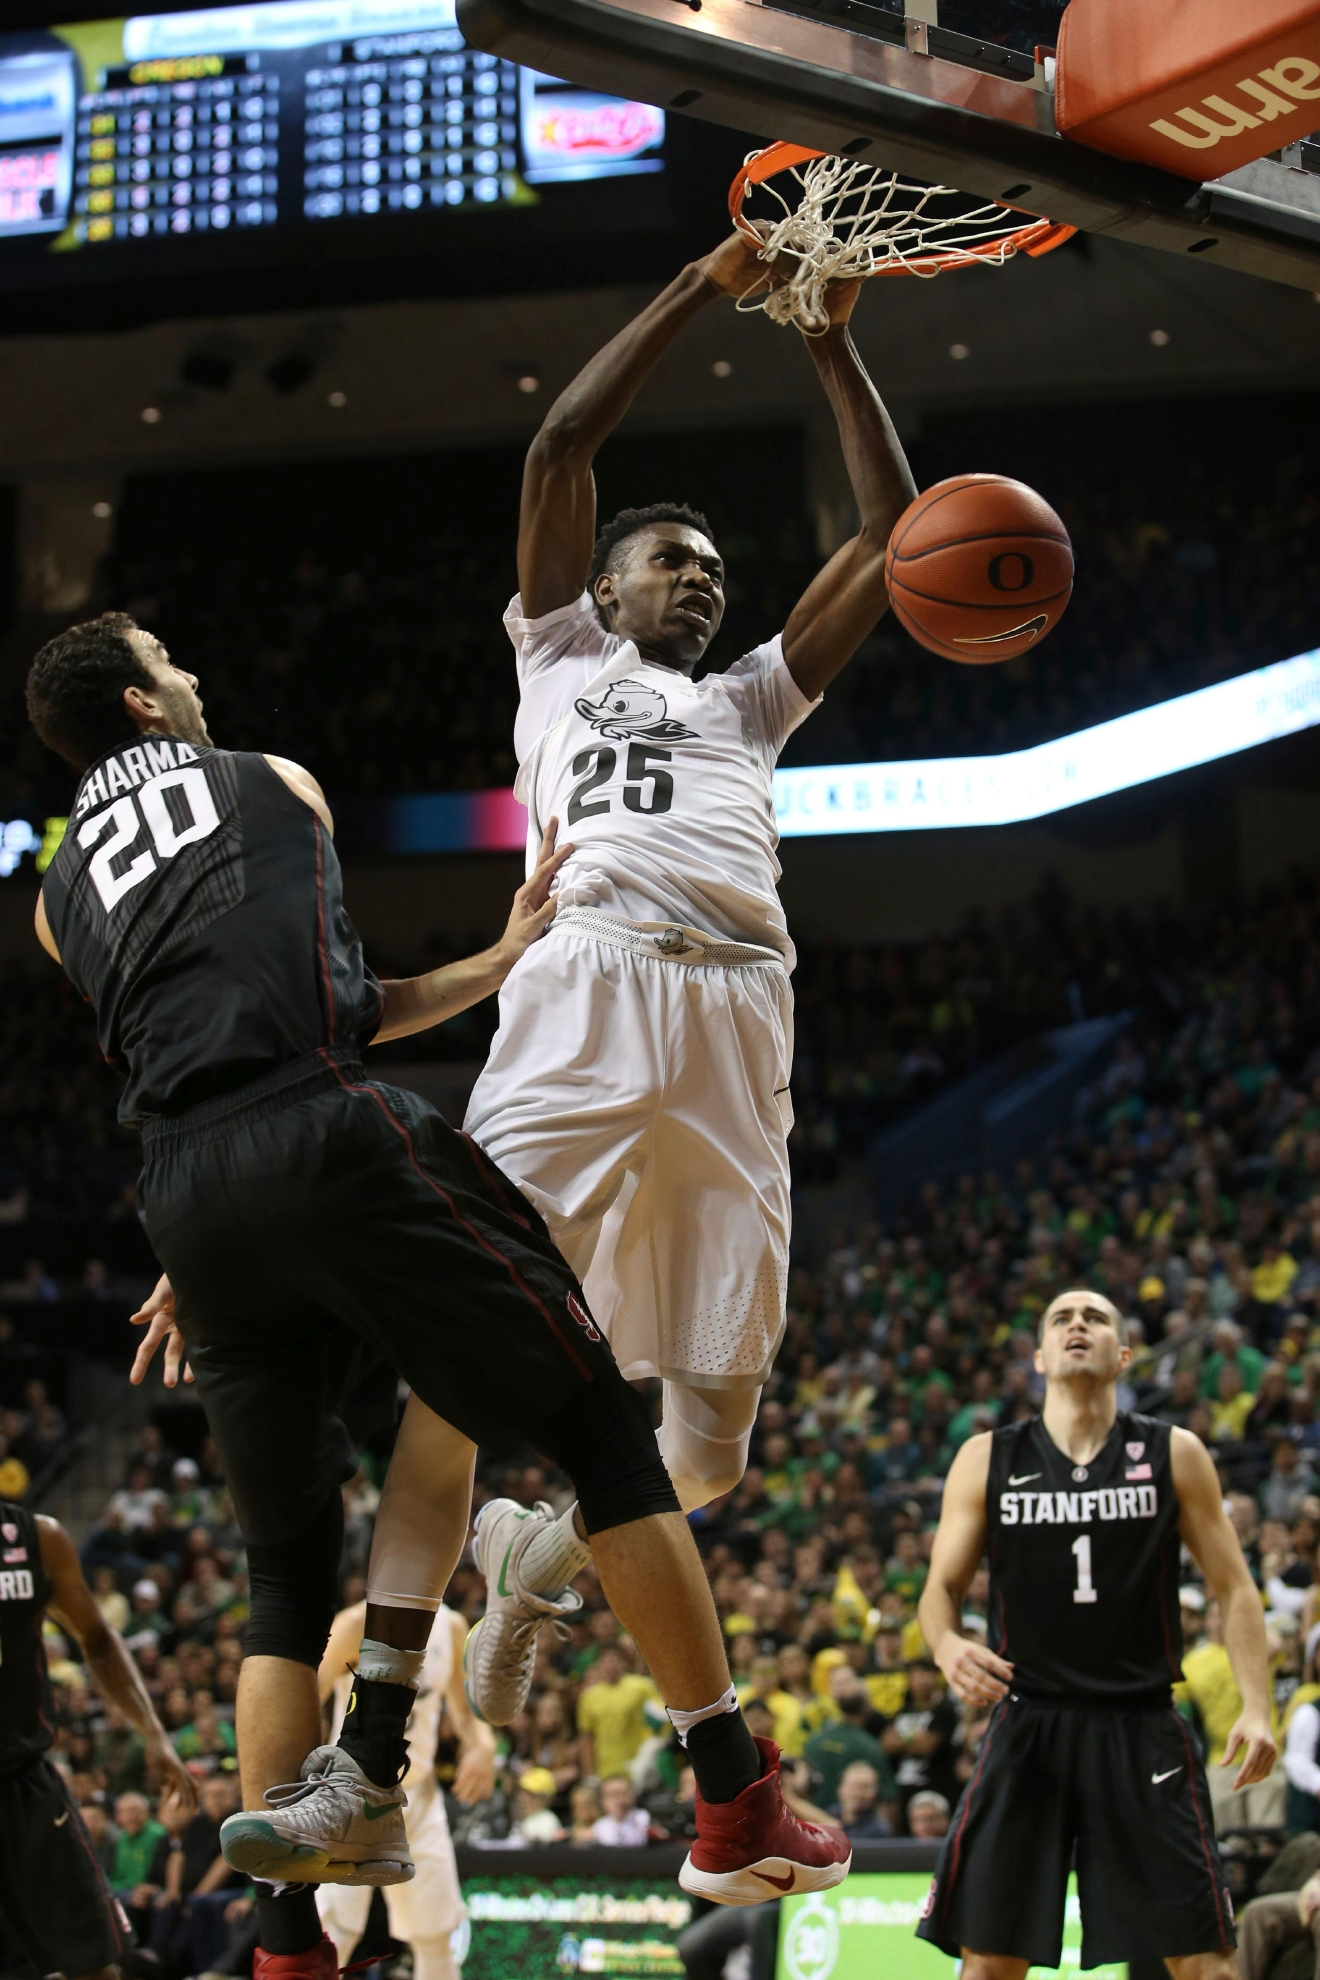 Oregon's Chris Boucher, center, dunks the ball between Stanford's Josh Sharma, left, and Christian Sanders, right, during the first half of an NCAA college basketball game, Saturday, Jan. 21, 2017, in Eugene, Ore. (AP Photo/Chris Pietsch)